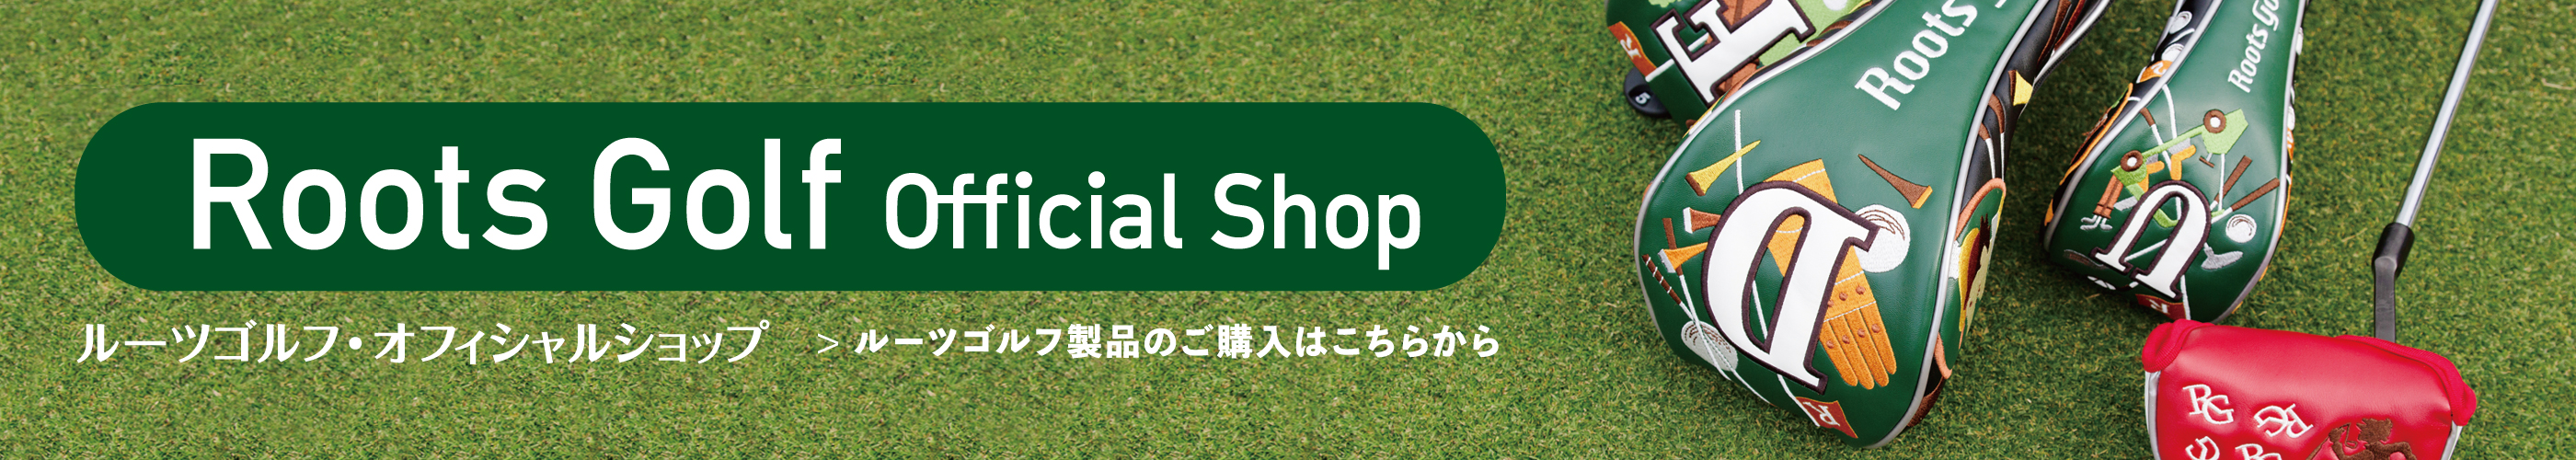 Roots Golf Official Stop